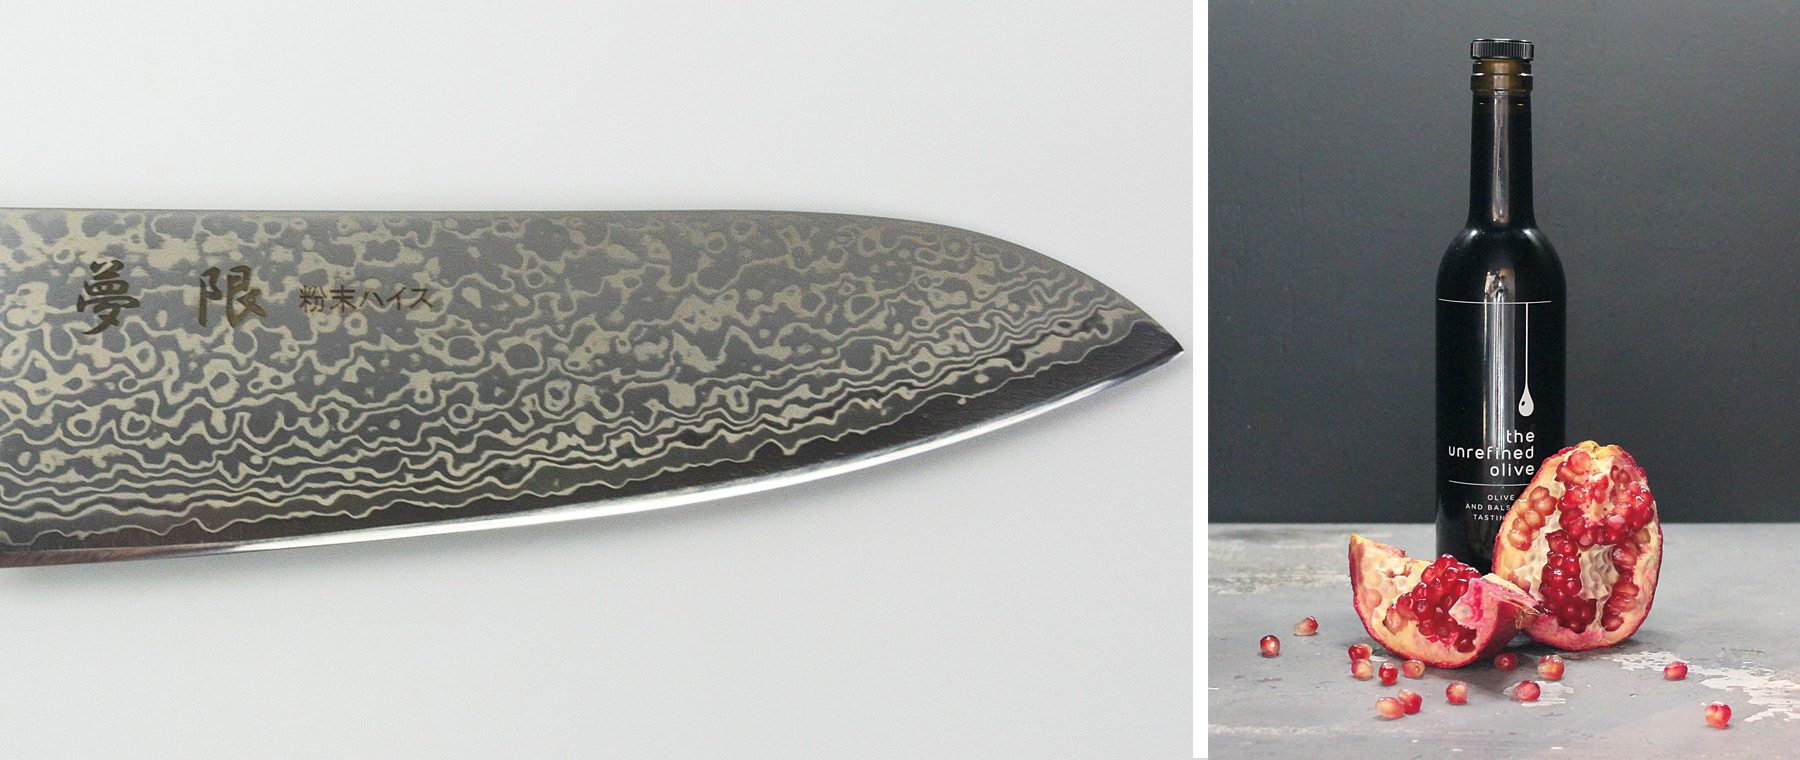 (Left) The Mugen Santoku is a multi-purpose knife perfect for slicing, dicing, and mincing vegetables. $500. Knifewear. Extra-virgin olive oils and aged balsamic vinegar make excellent host gifts. This pomegranate vinegar would pair well with winter greens. $14/200 mL. The Unrefined Olive.